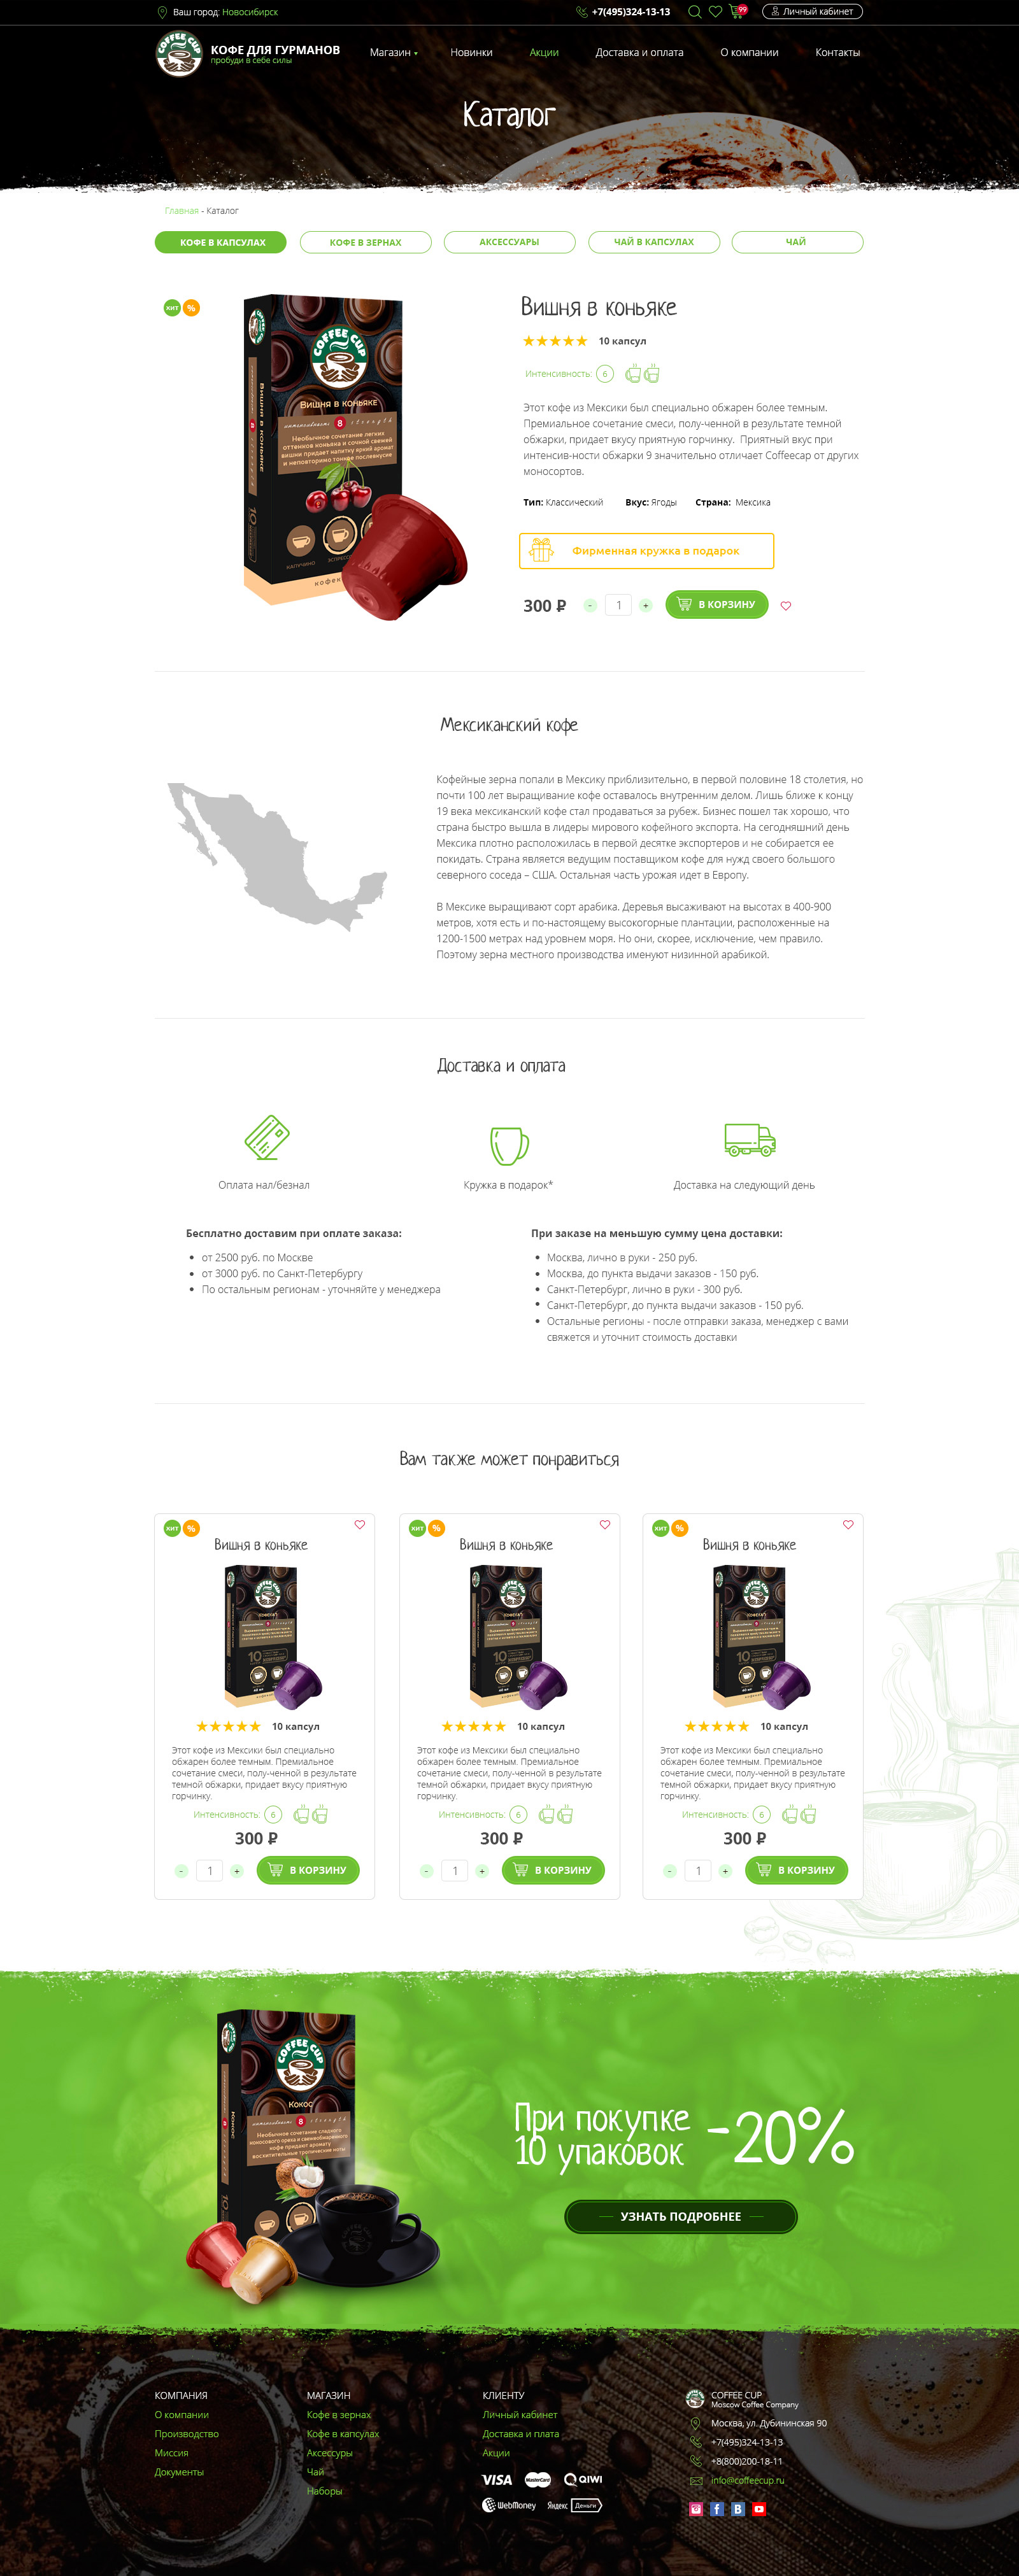 Product page design of Coffeecup website